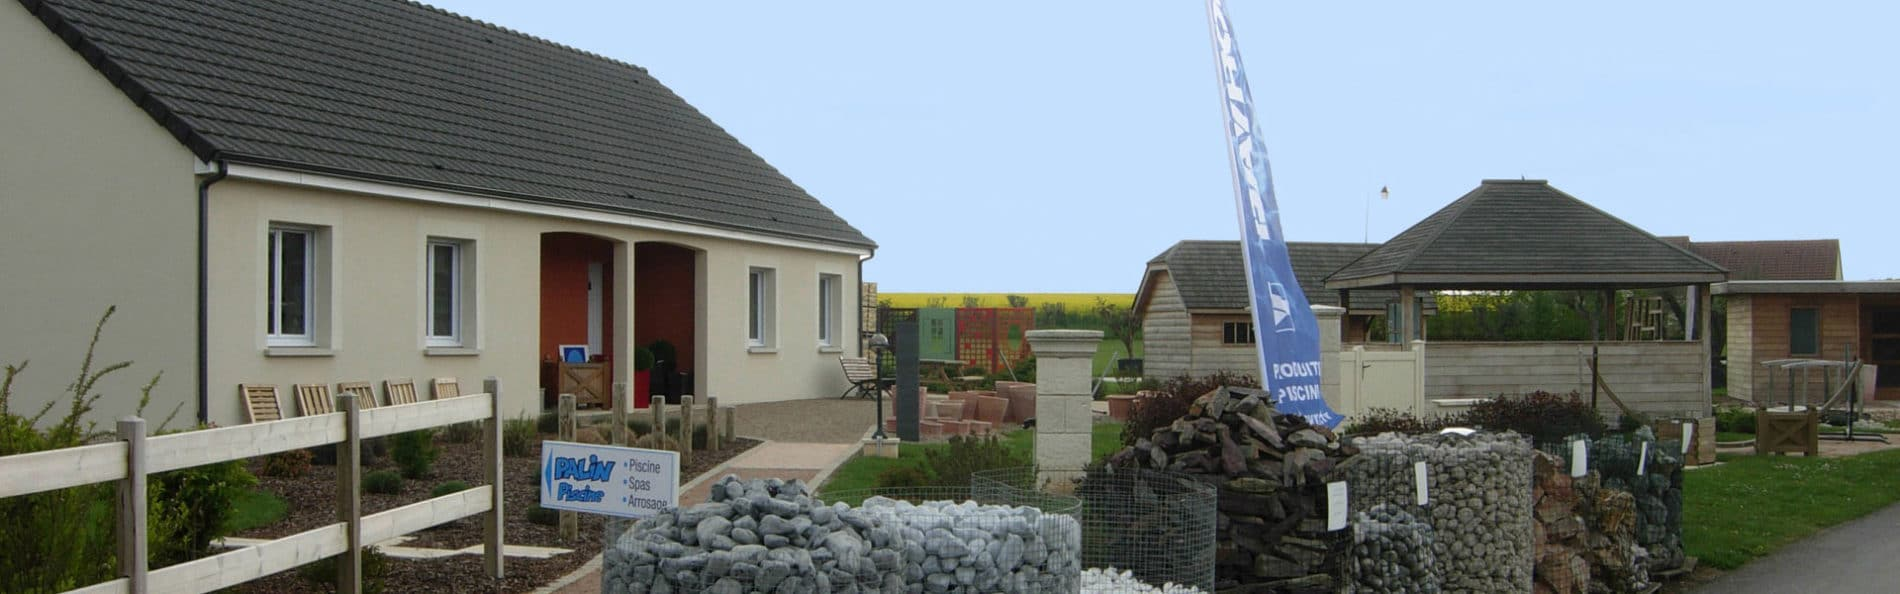 Palin Espaces Verts – Hydro Sud Bourges